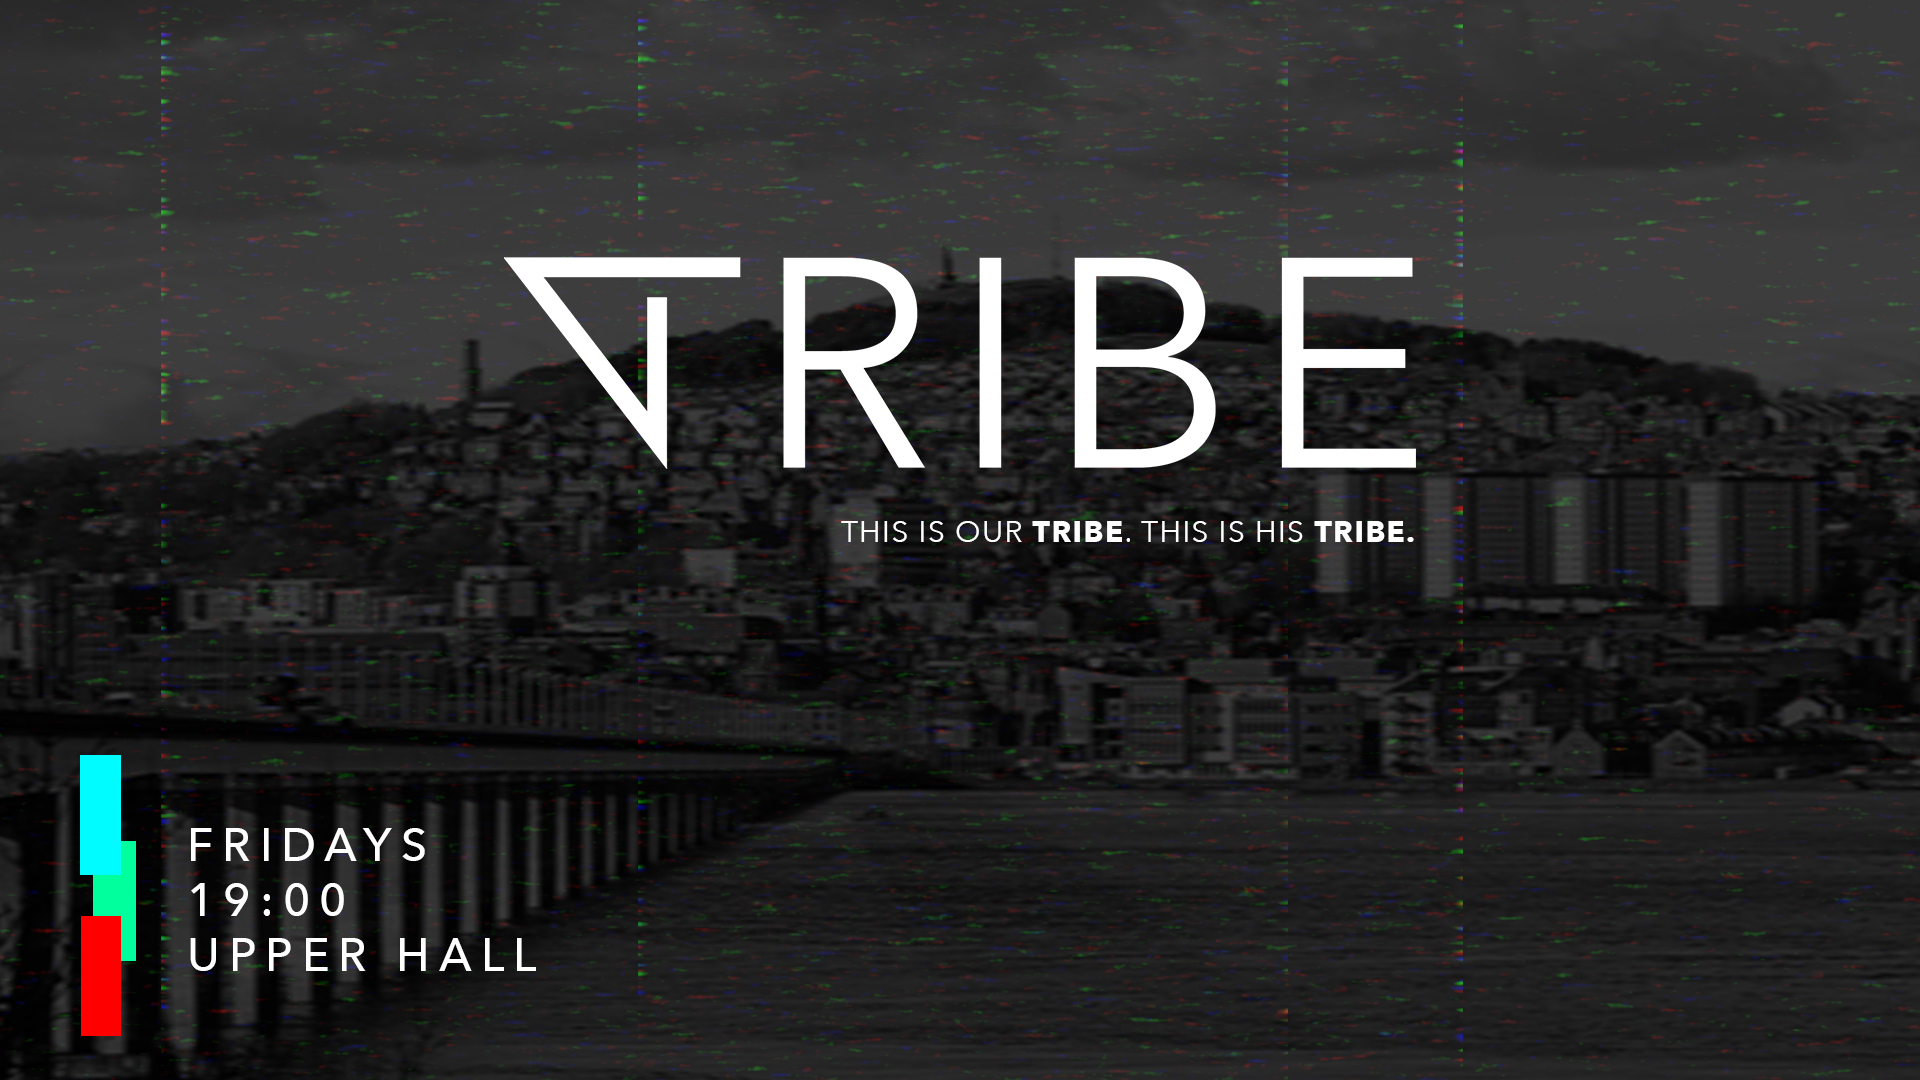 1920x1080 Tribe Background.jpg